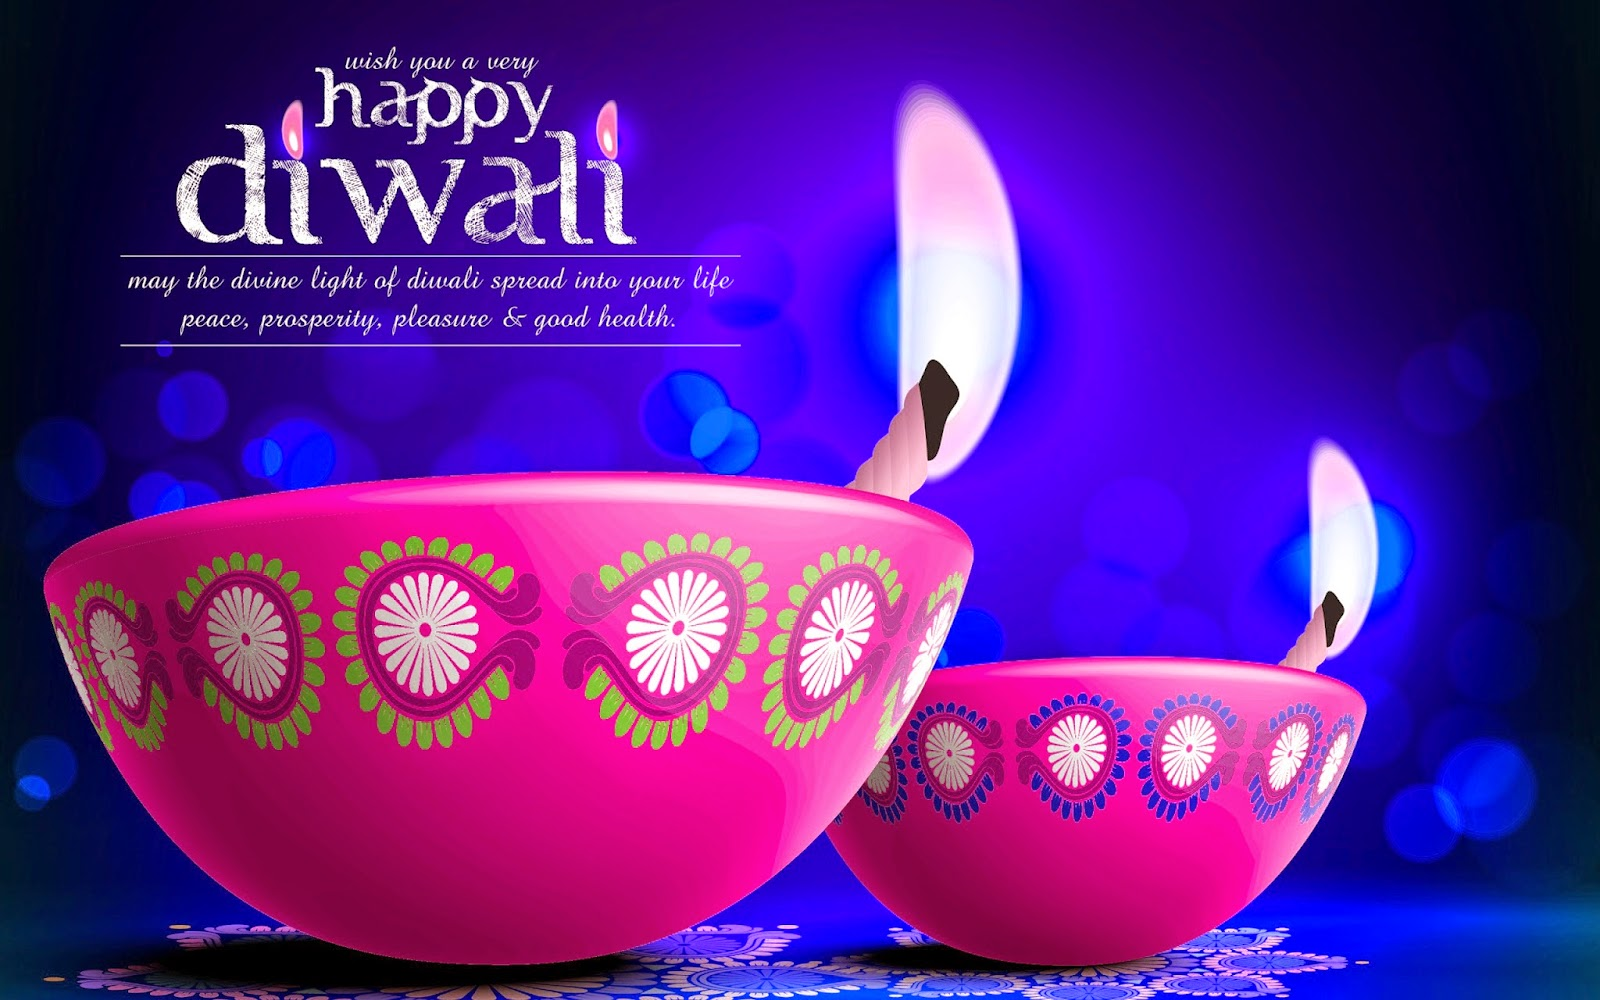 essay on diwali wallpapers Diwali essay happy safe diwali this favour has been related download our successful collection of happy diwali wallpapers, deepavali experiences.